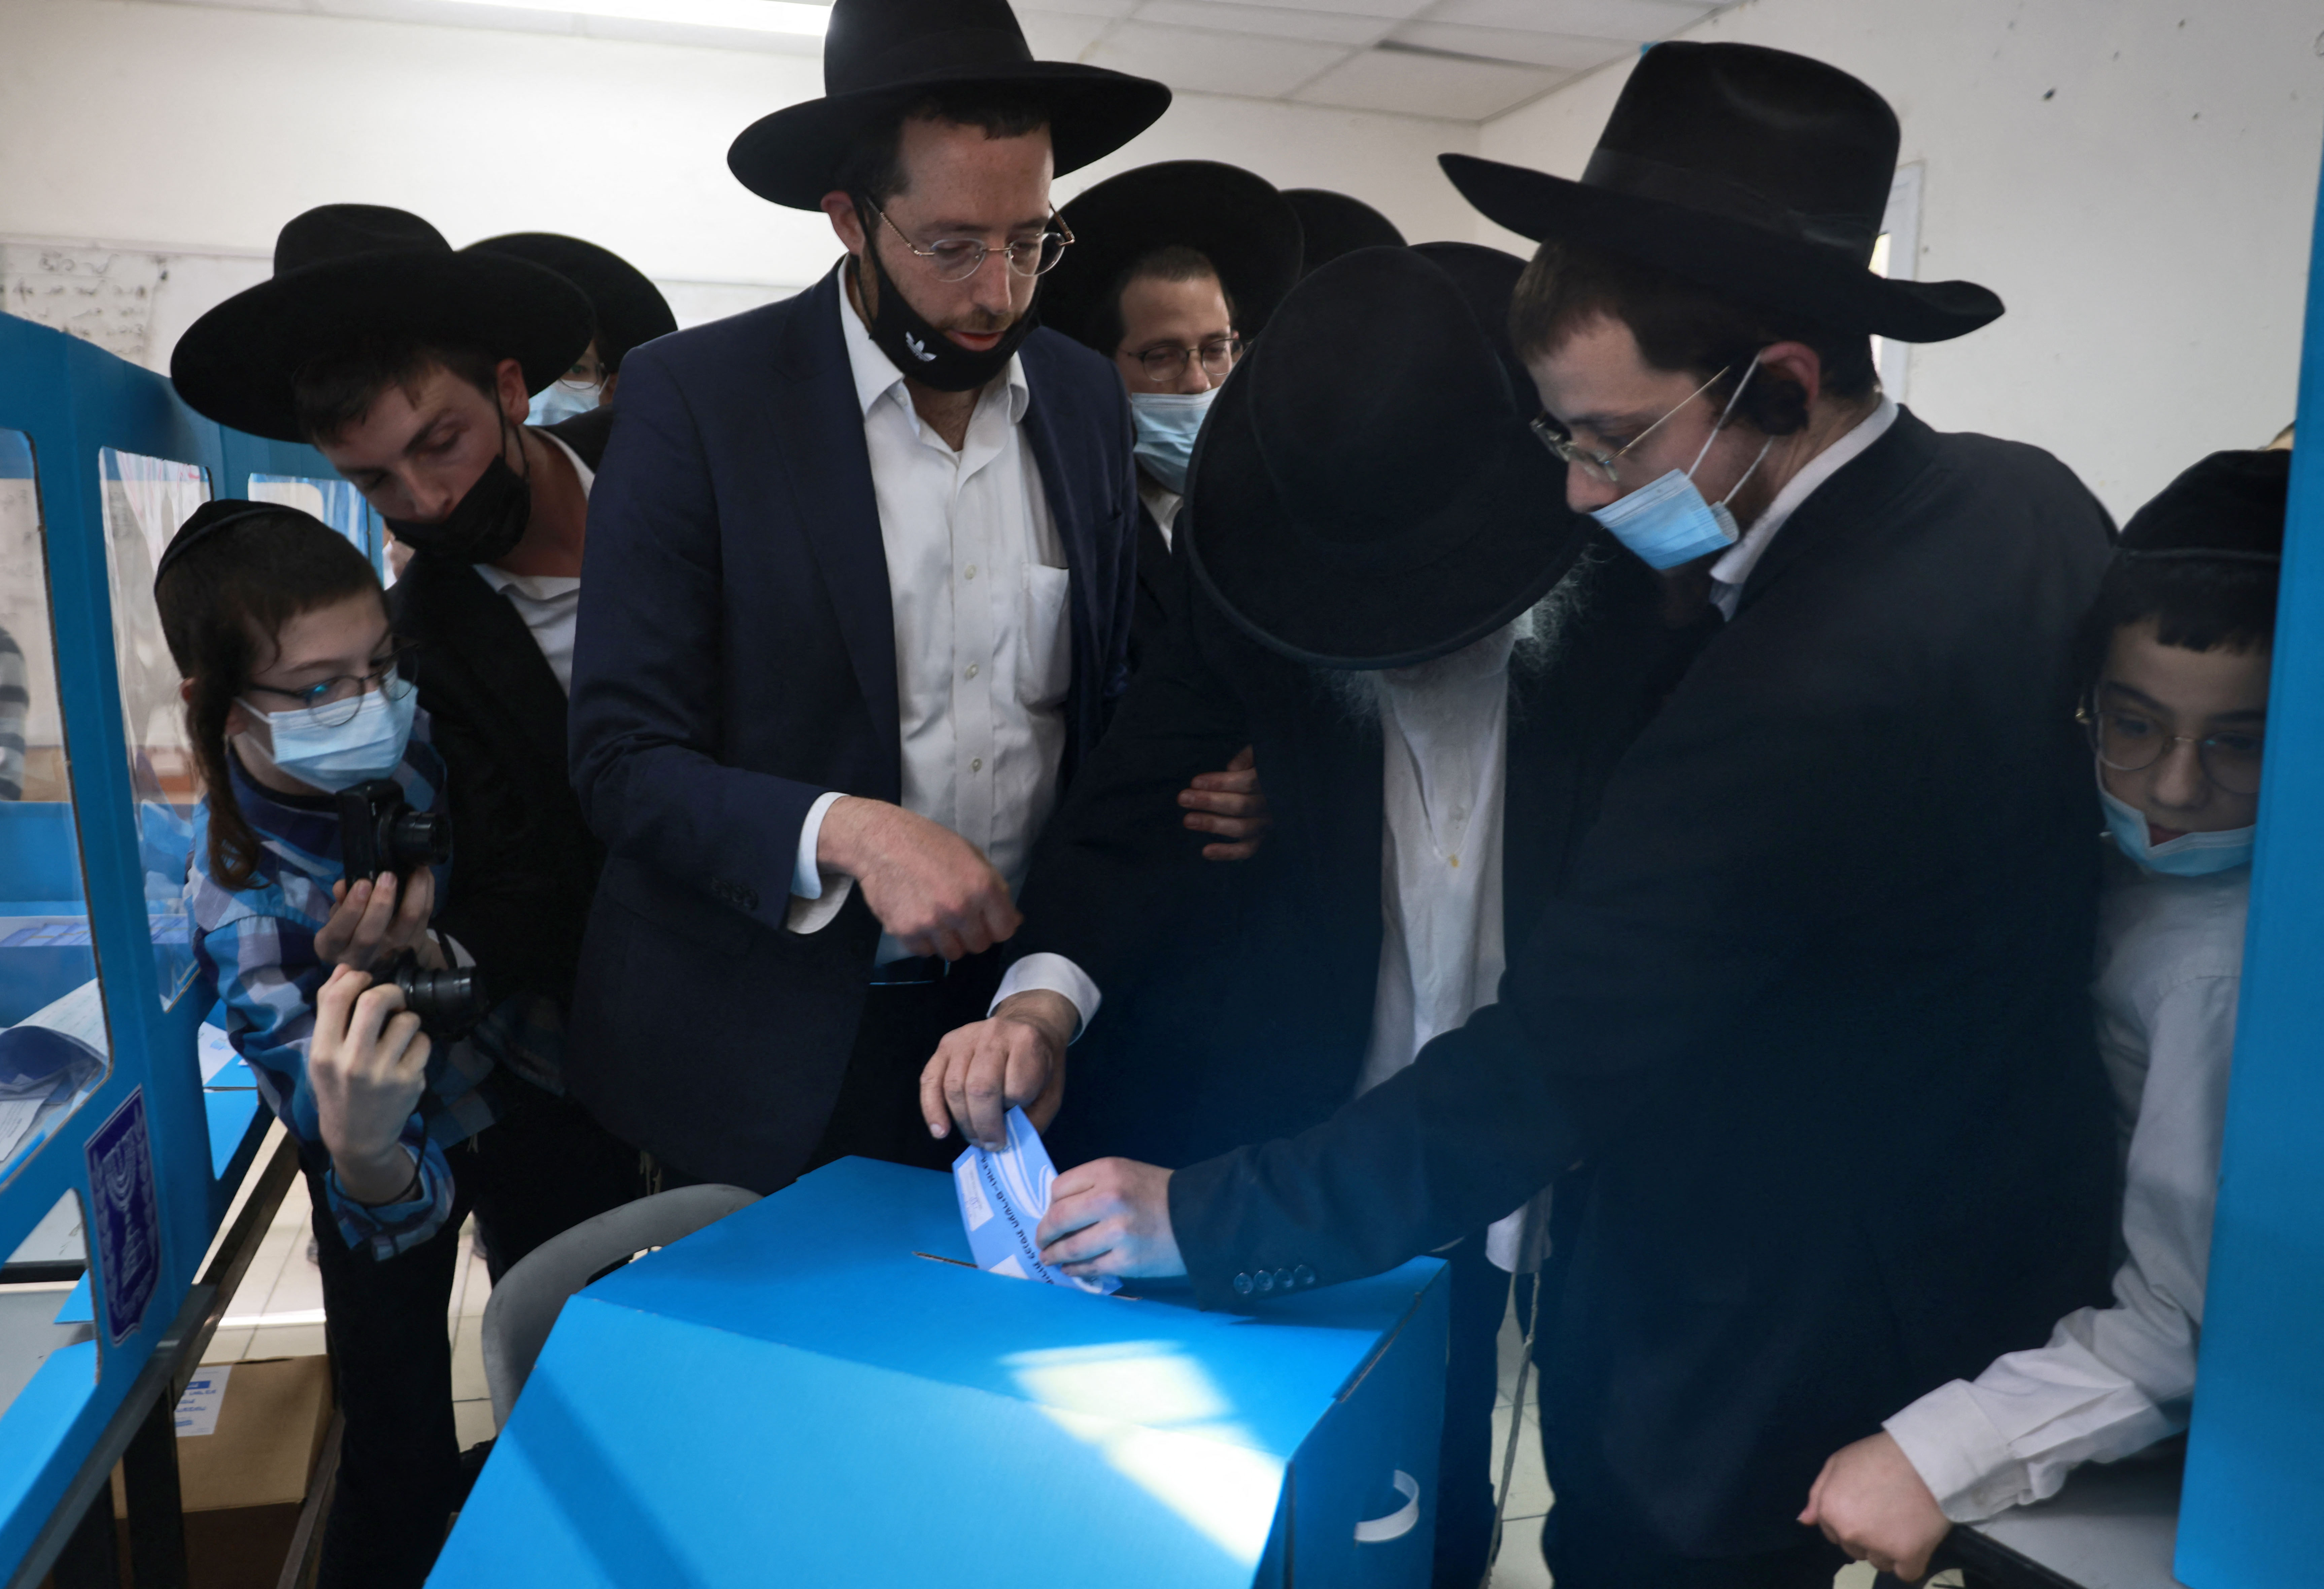 Religious Israelis cast their ballots on March 23, 2021 in the mostly Jewish ultra-Orthodox city of Bnei Brak on the fourth national election in two years.